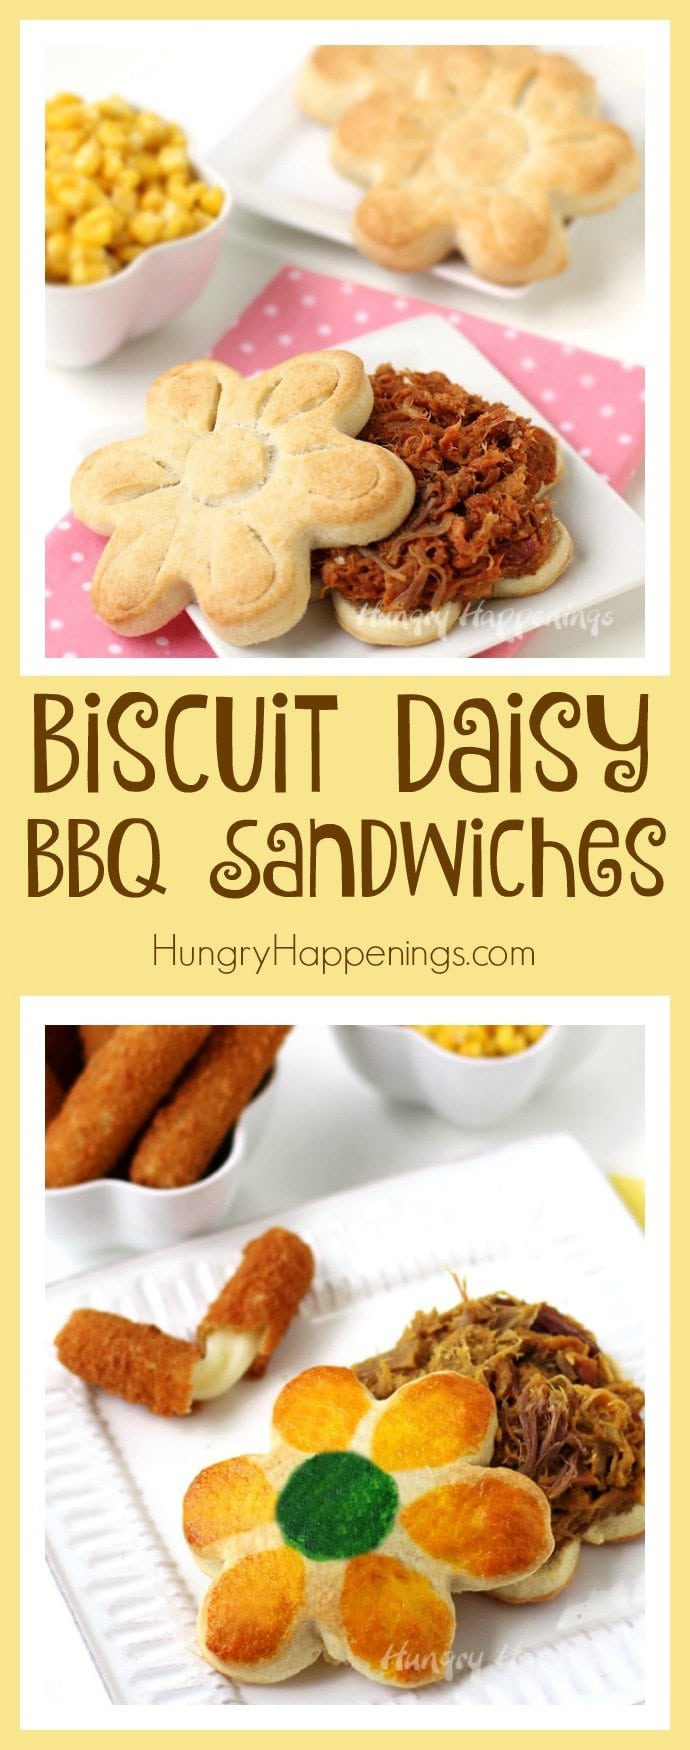 Turn homemade biscuits into these pretty Biscuit Daisy BBQ Sandwiches for a festive Mother's Day dinner or springtime meal.